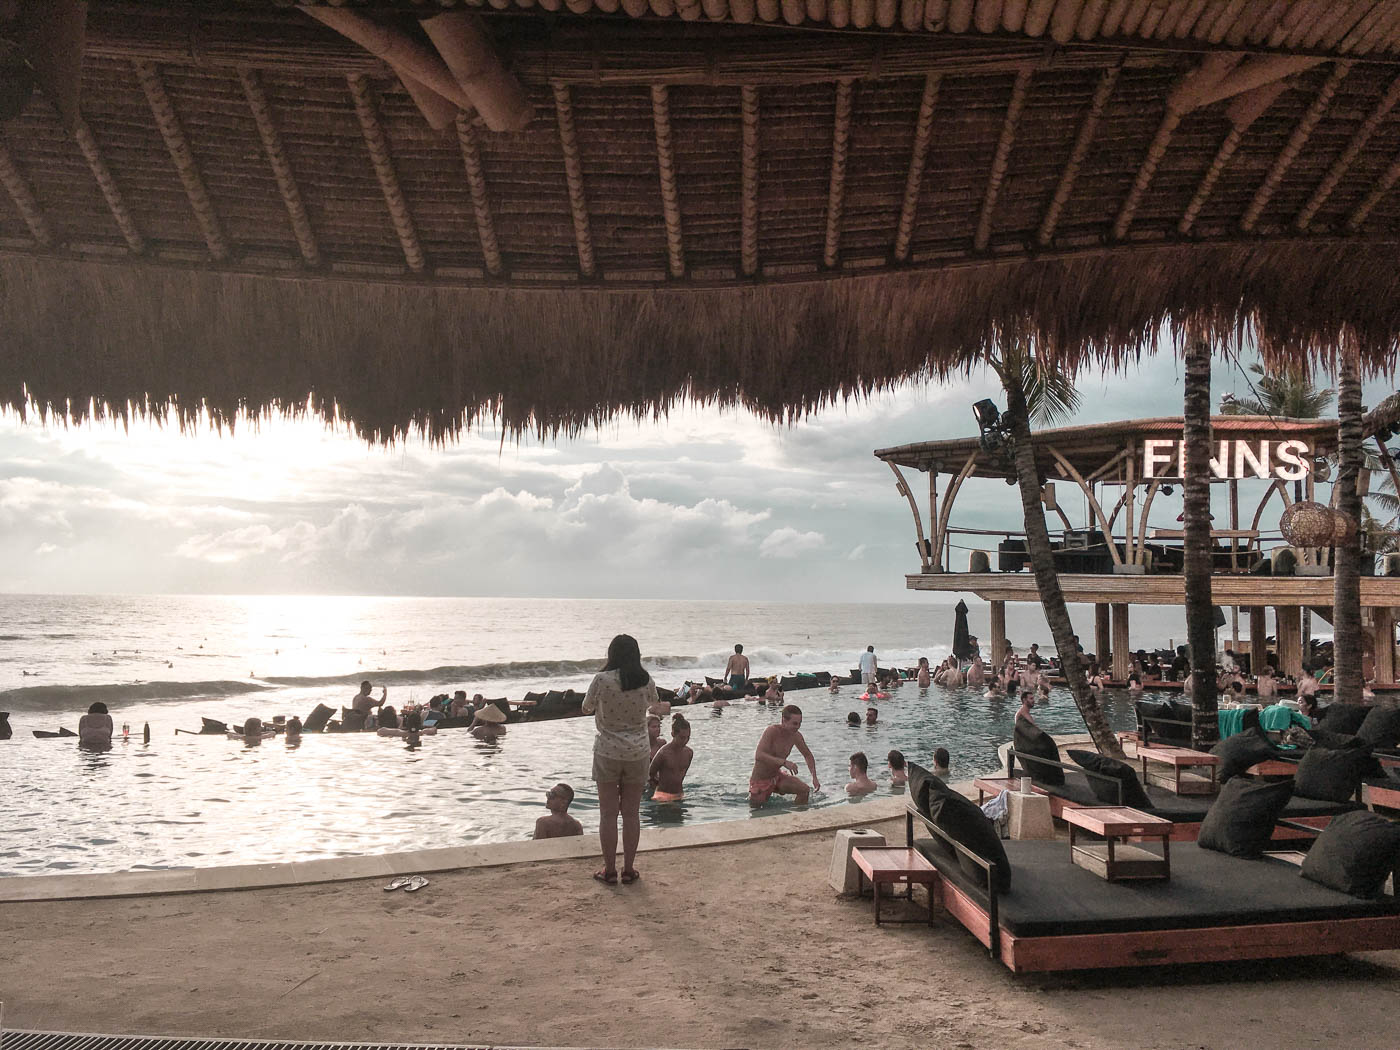 Finn's Beach Club, Canggu